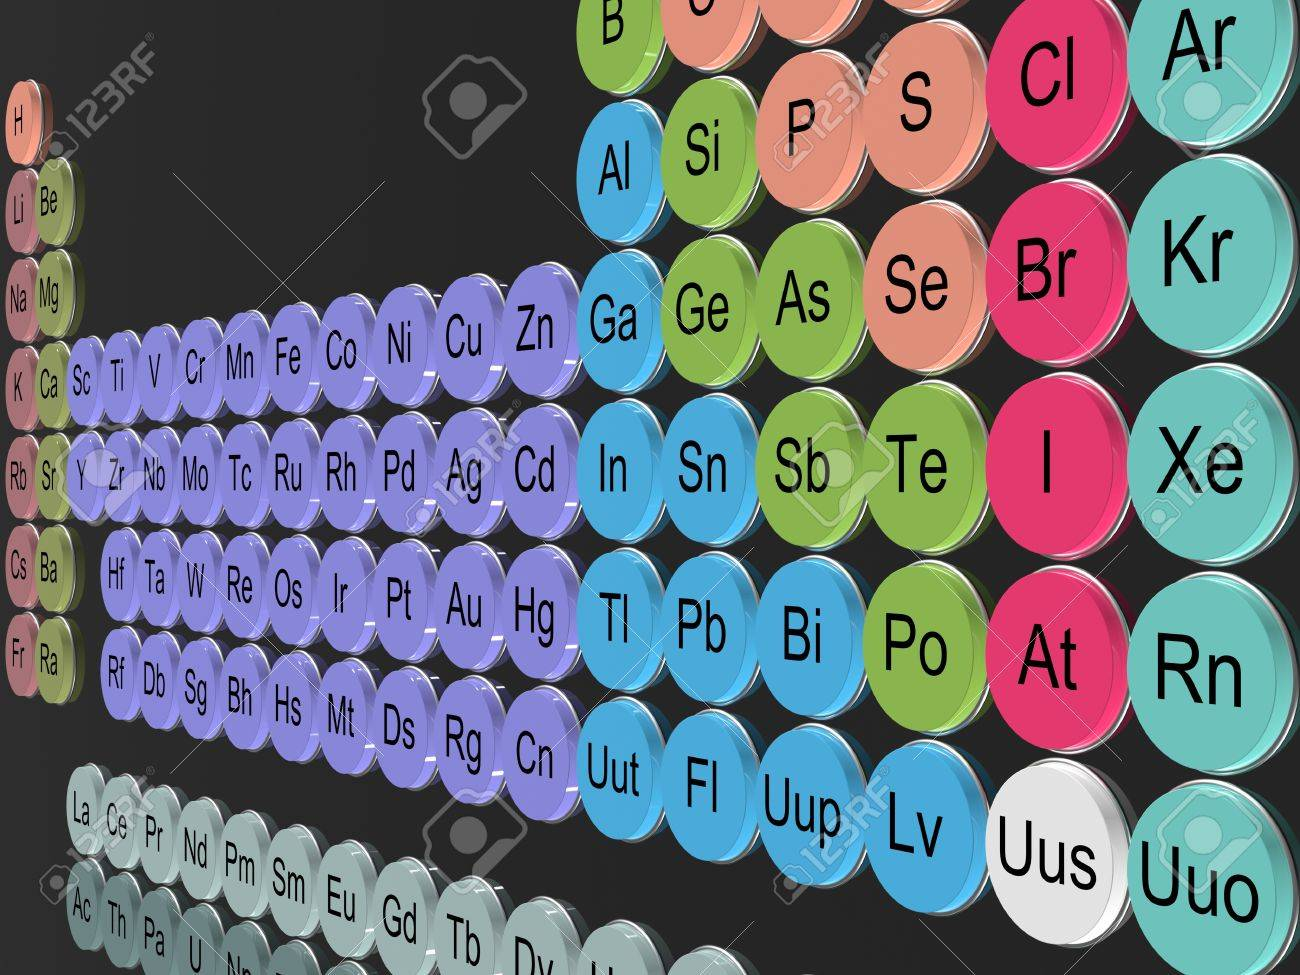 Periodic table of the elements mendeleev table on wall stock photo periodic table of the elements mendeleev table on wall stock photo 31035811 urtaz Image collections